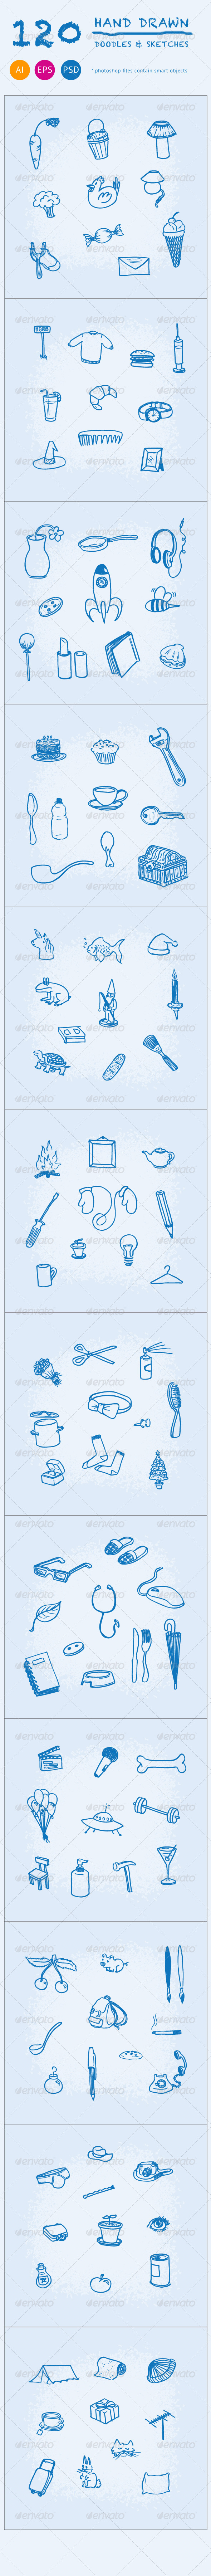 120 Hand Drawn Doodles and Sketches - Objects Icons